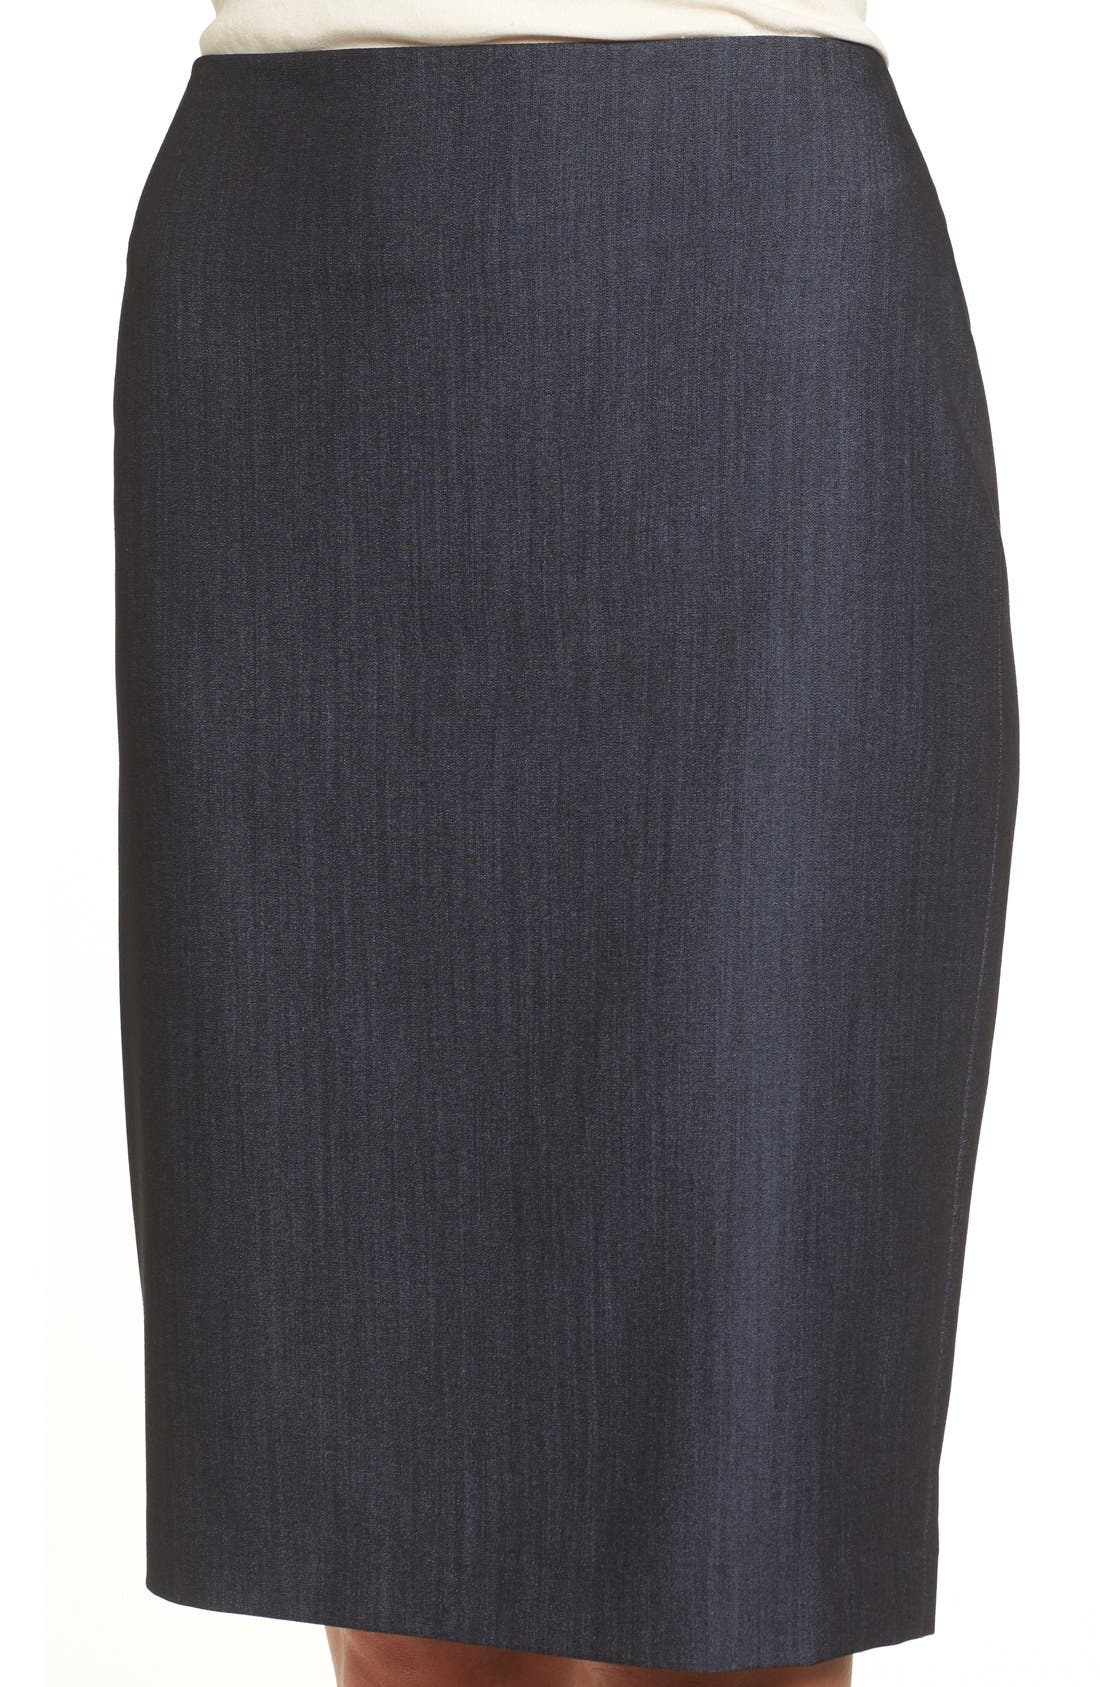 ANNE KLEIN,                             Stretch Woven Suit Skirt,                             Alternate thumbnail 4, color,                             INDIGO TWILL